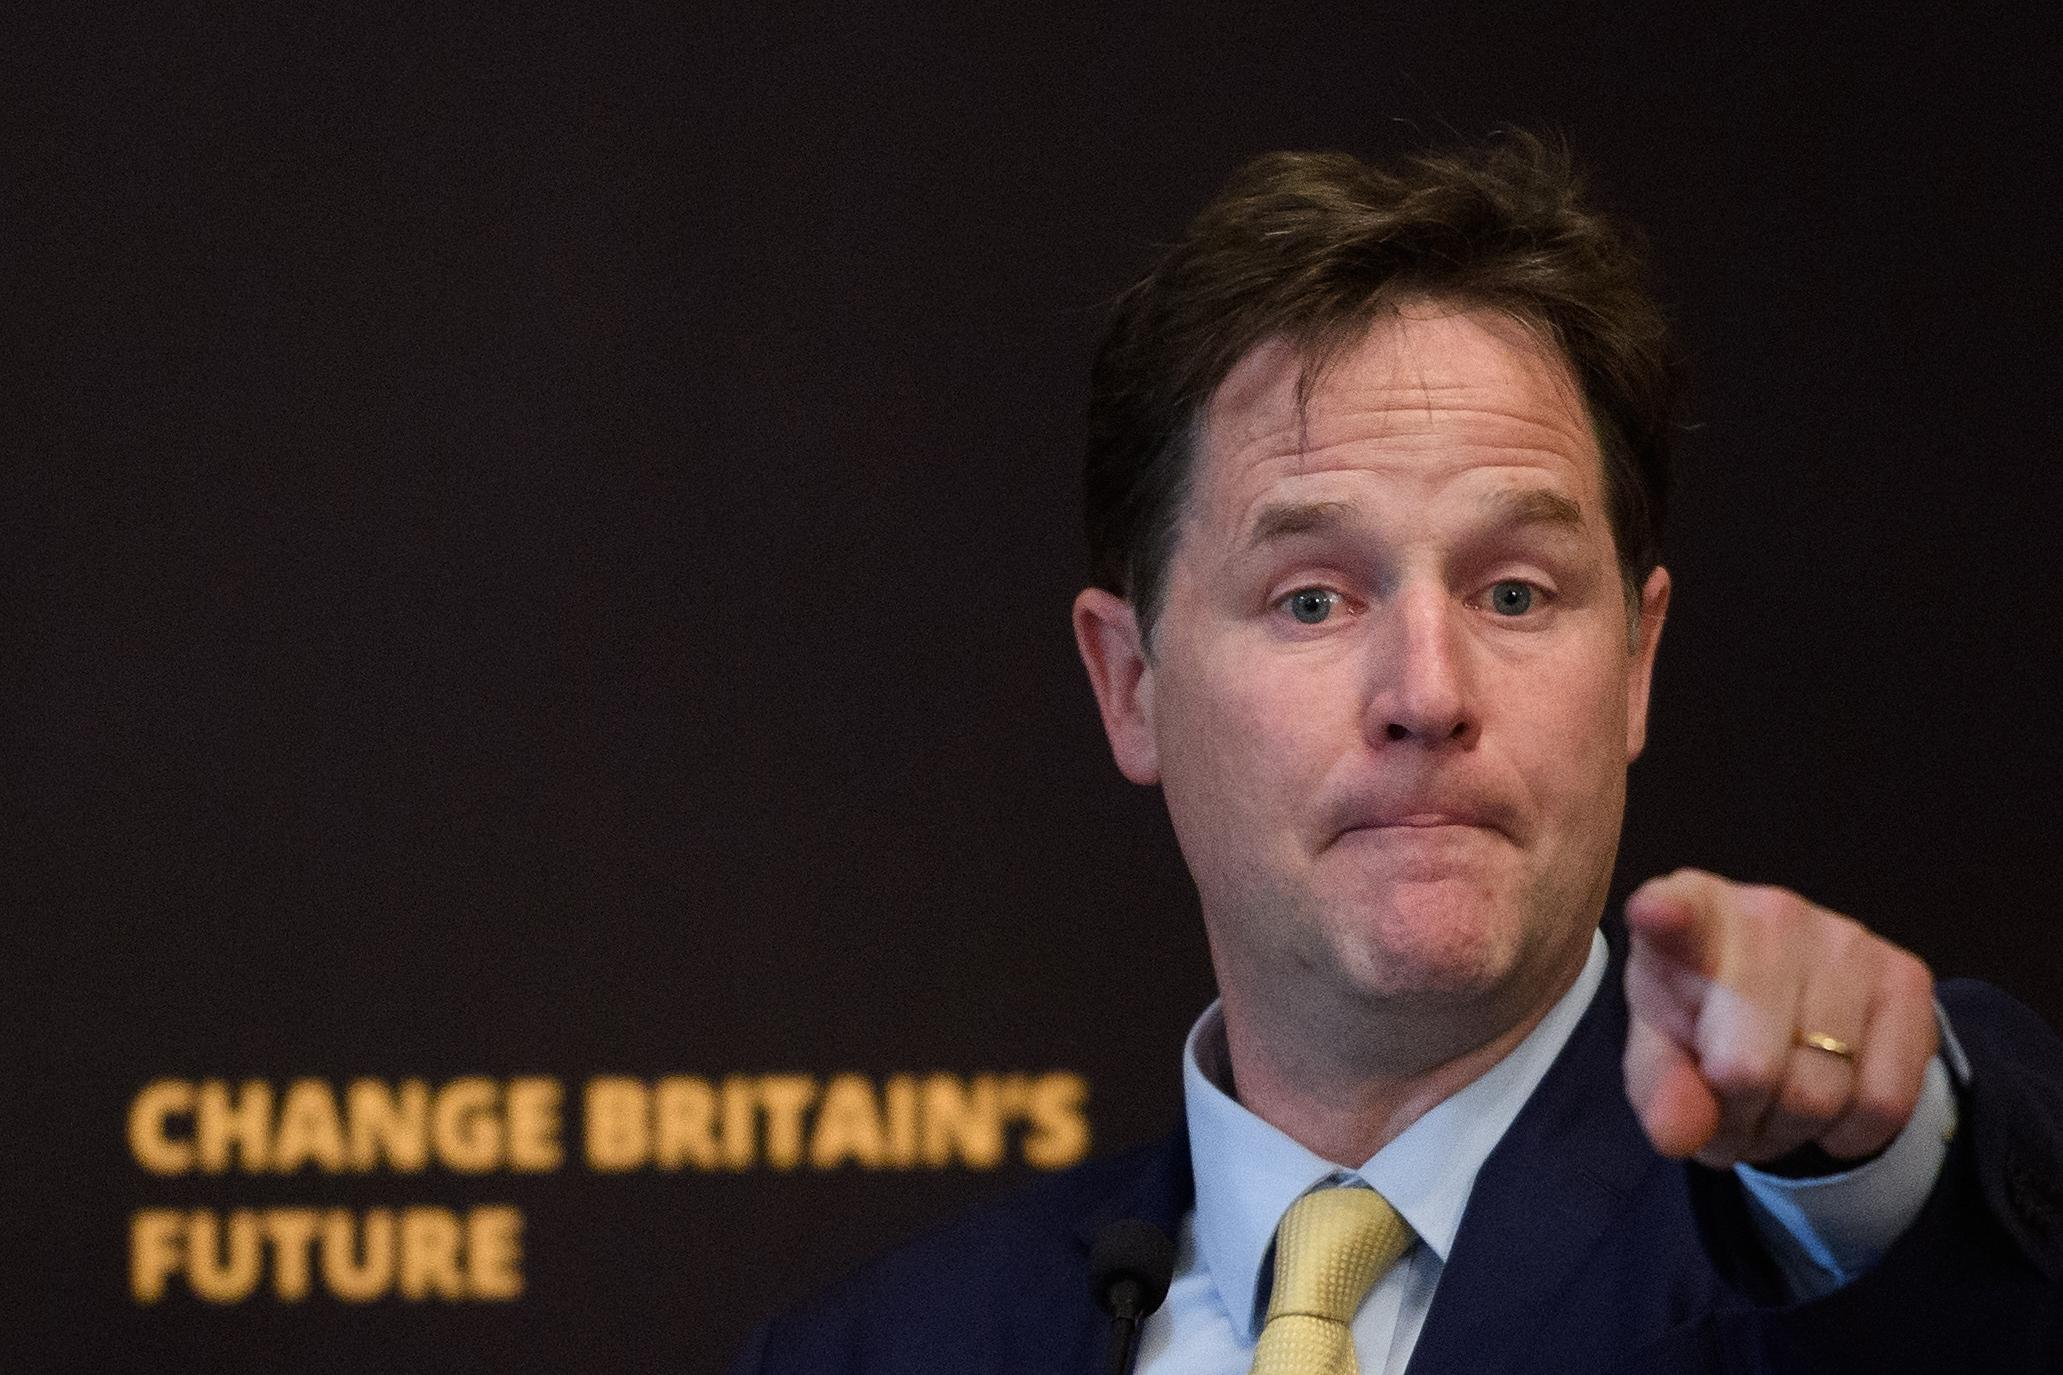 Facebook: Nick Clegg hired as head of global affairs